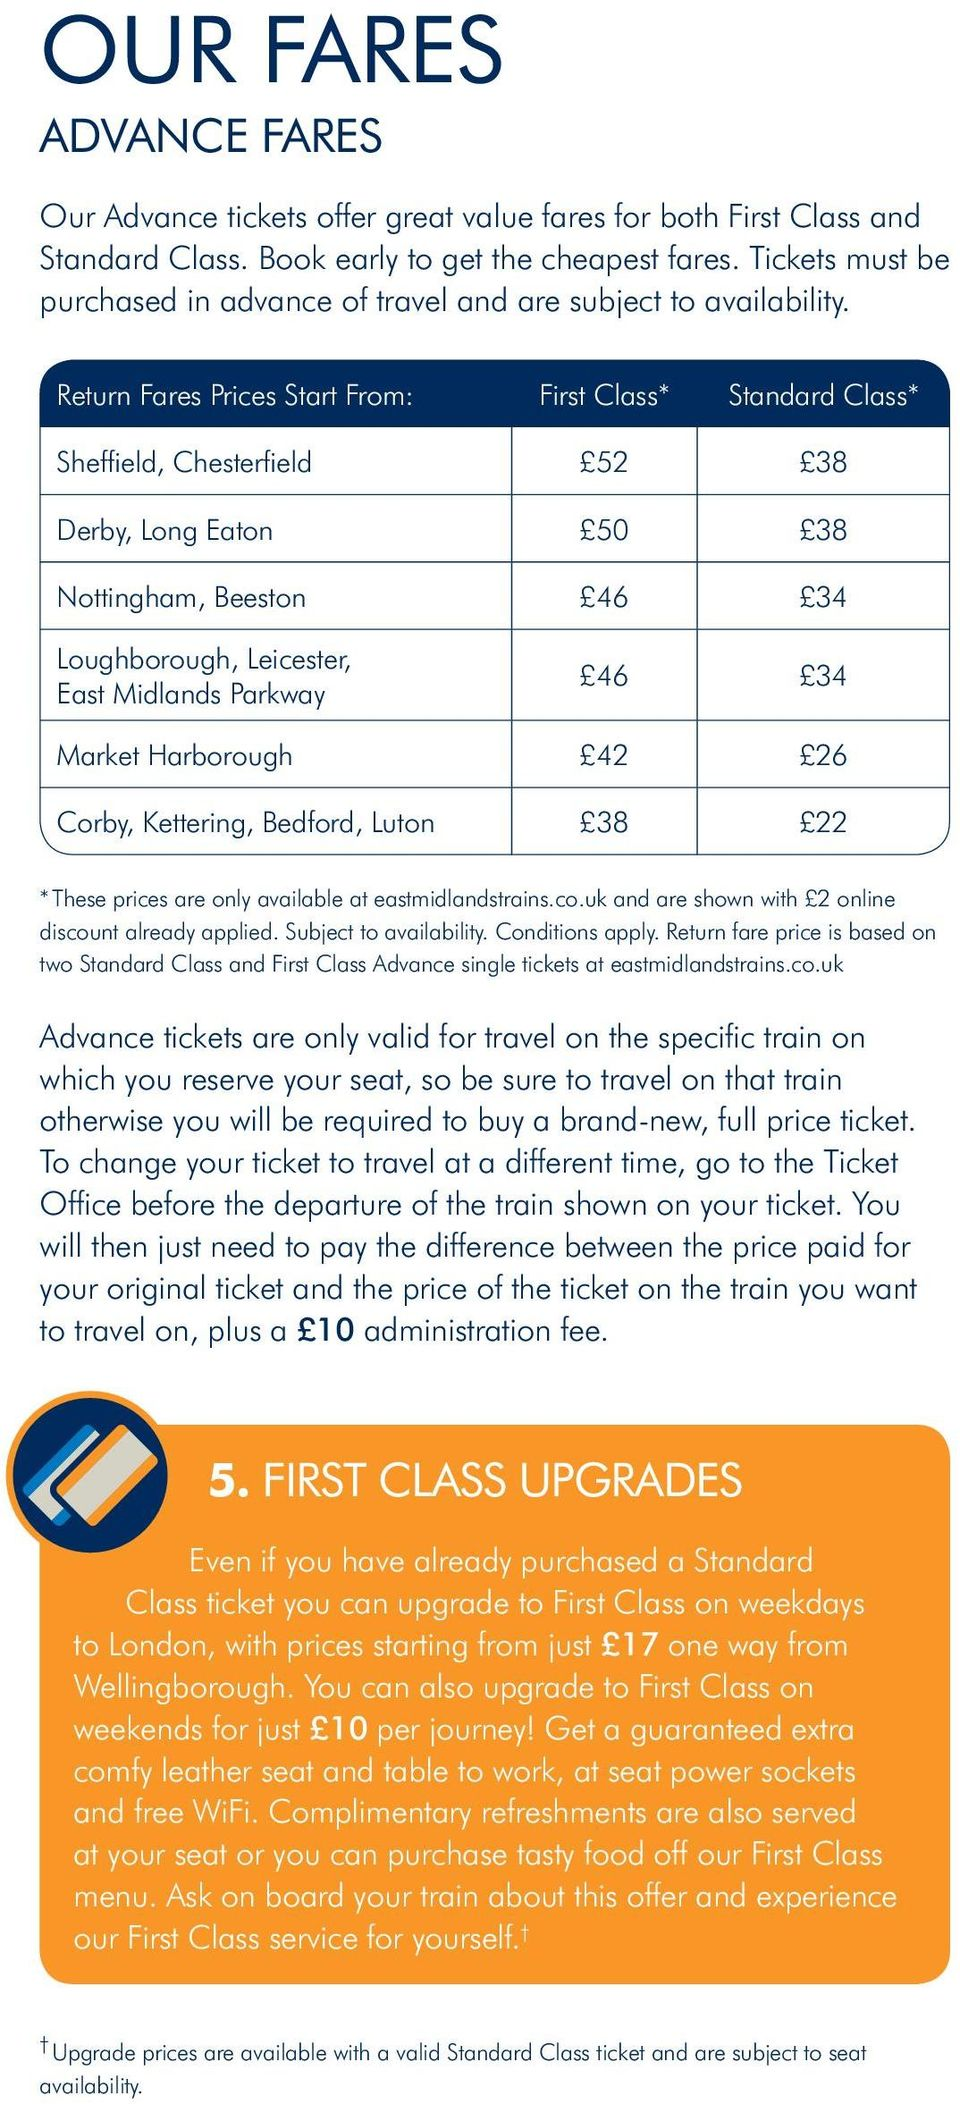 Return Fares Prices Start : First Class* Standard Class* Sheffield, Chesterfield 52 38 Derby, Long Eaton 50 38 Nottingham, Beeston 46 34 Loughborough, Leicester, East Midlands Parkway 46 34 Market